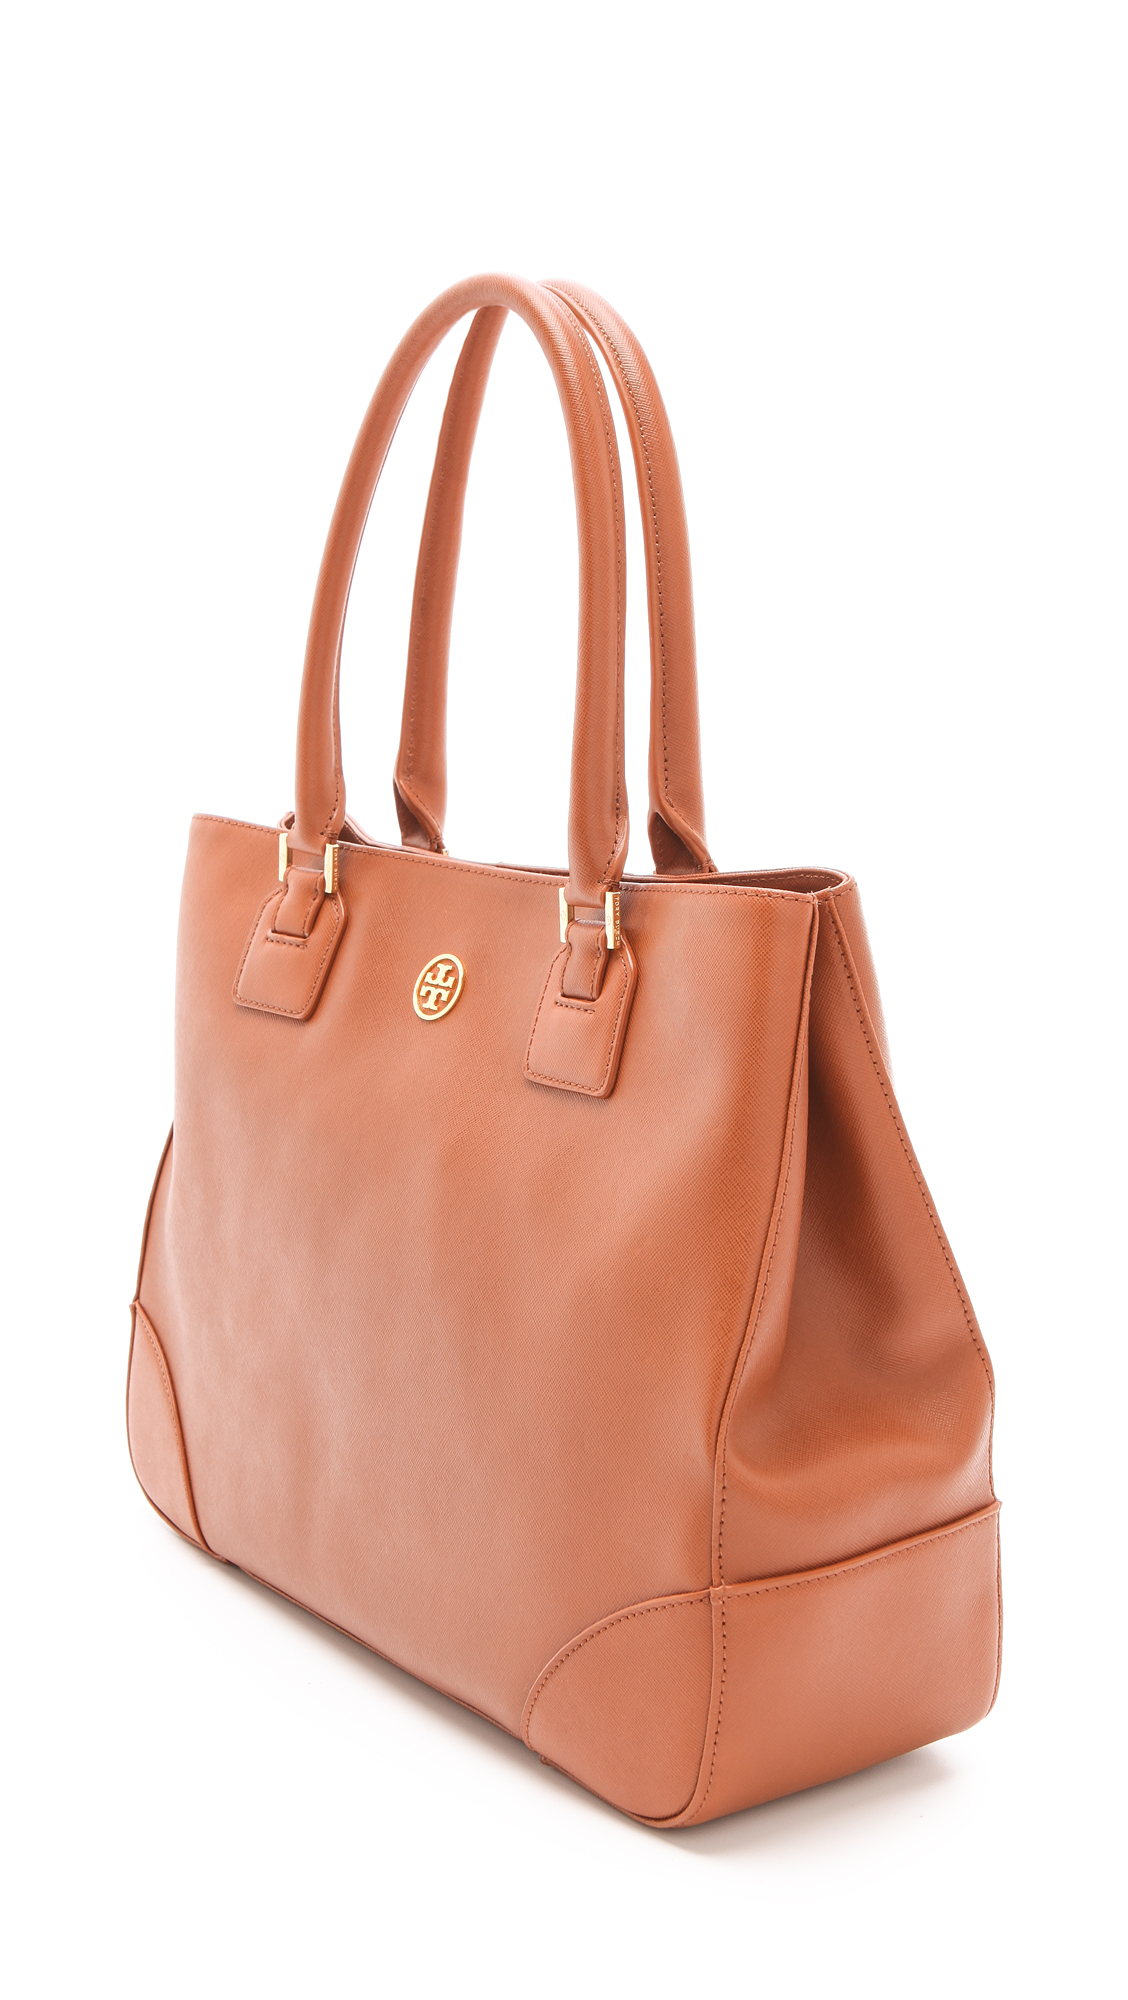 d58ce3ff887a Tory Burch Robinson East West Tote